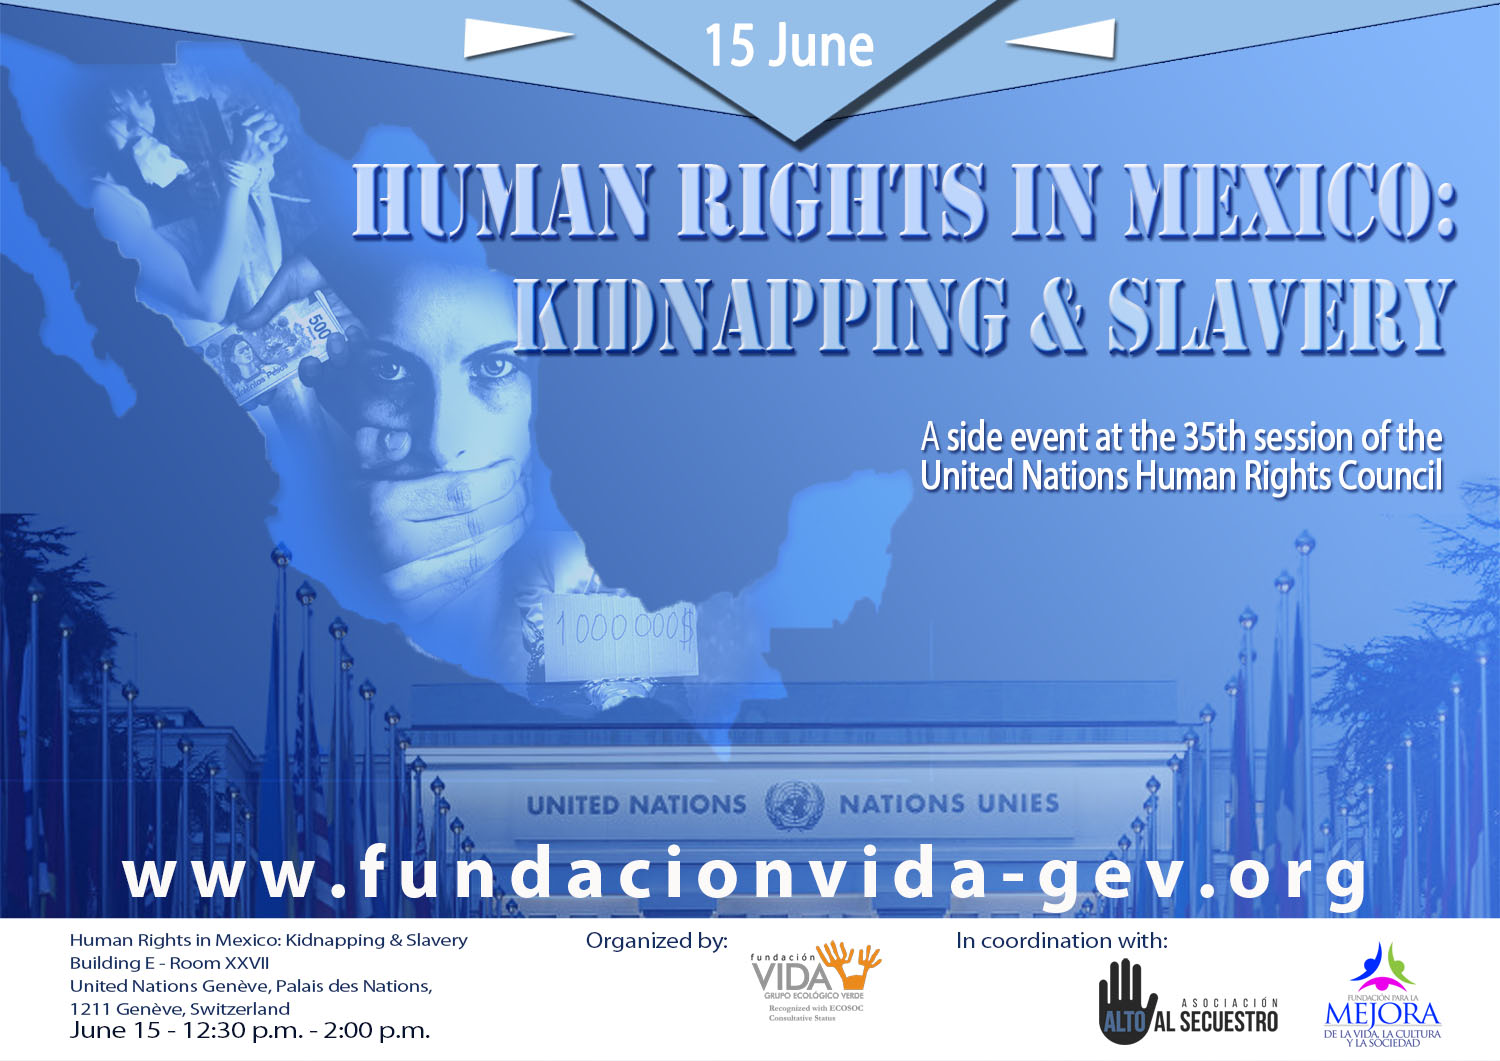 kidnapping, sla ery, mexico, united nations